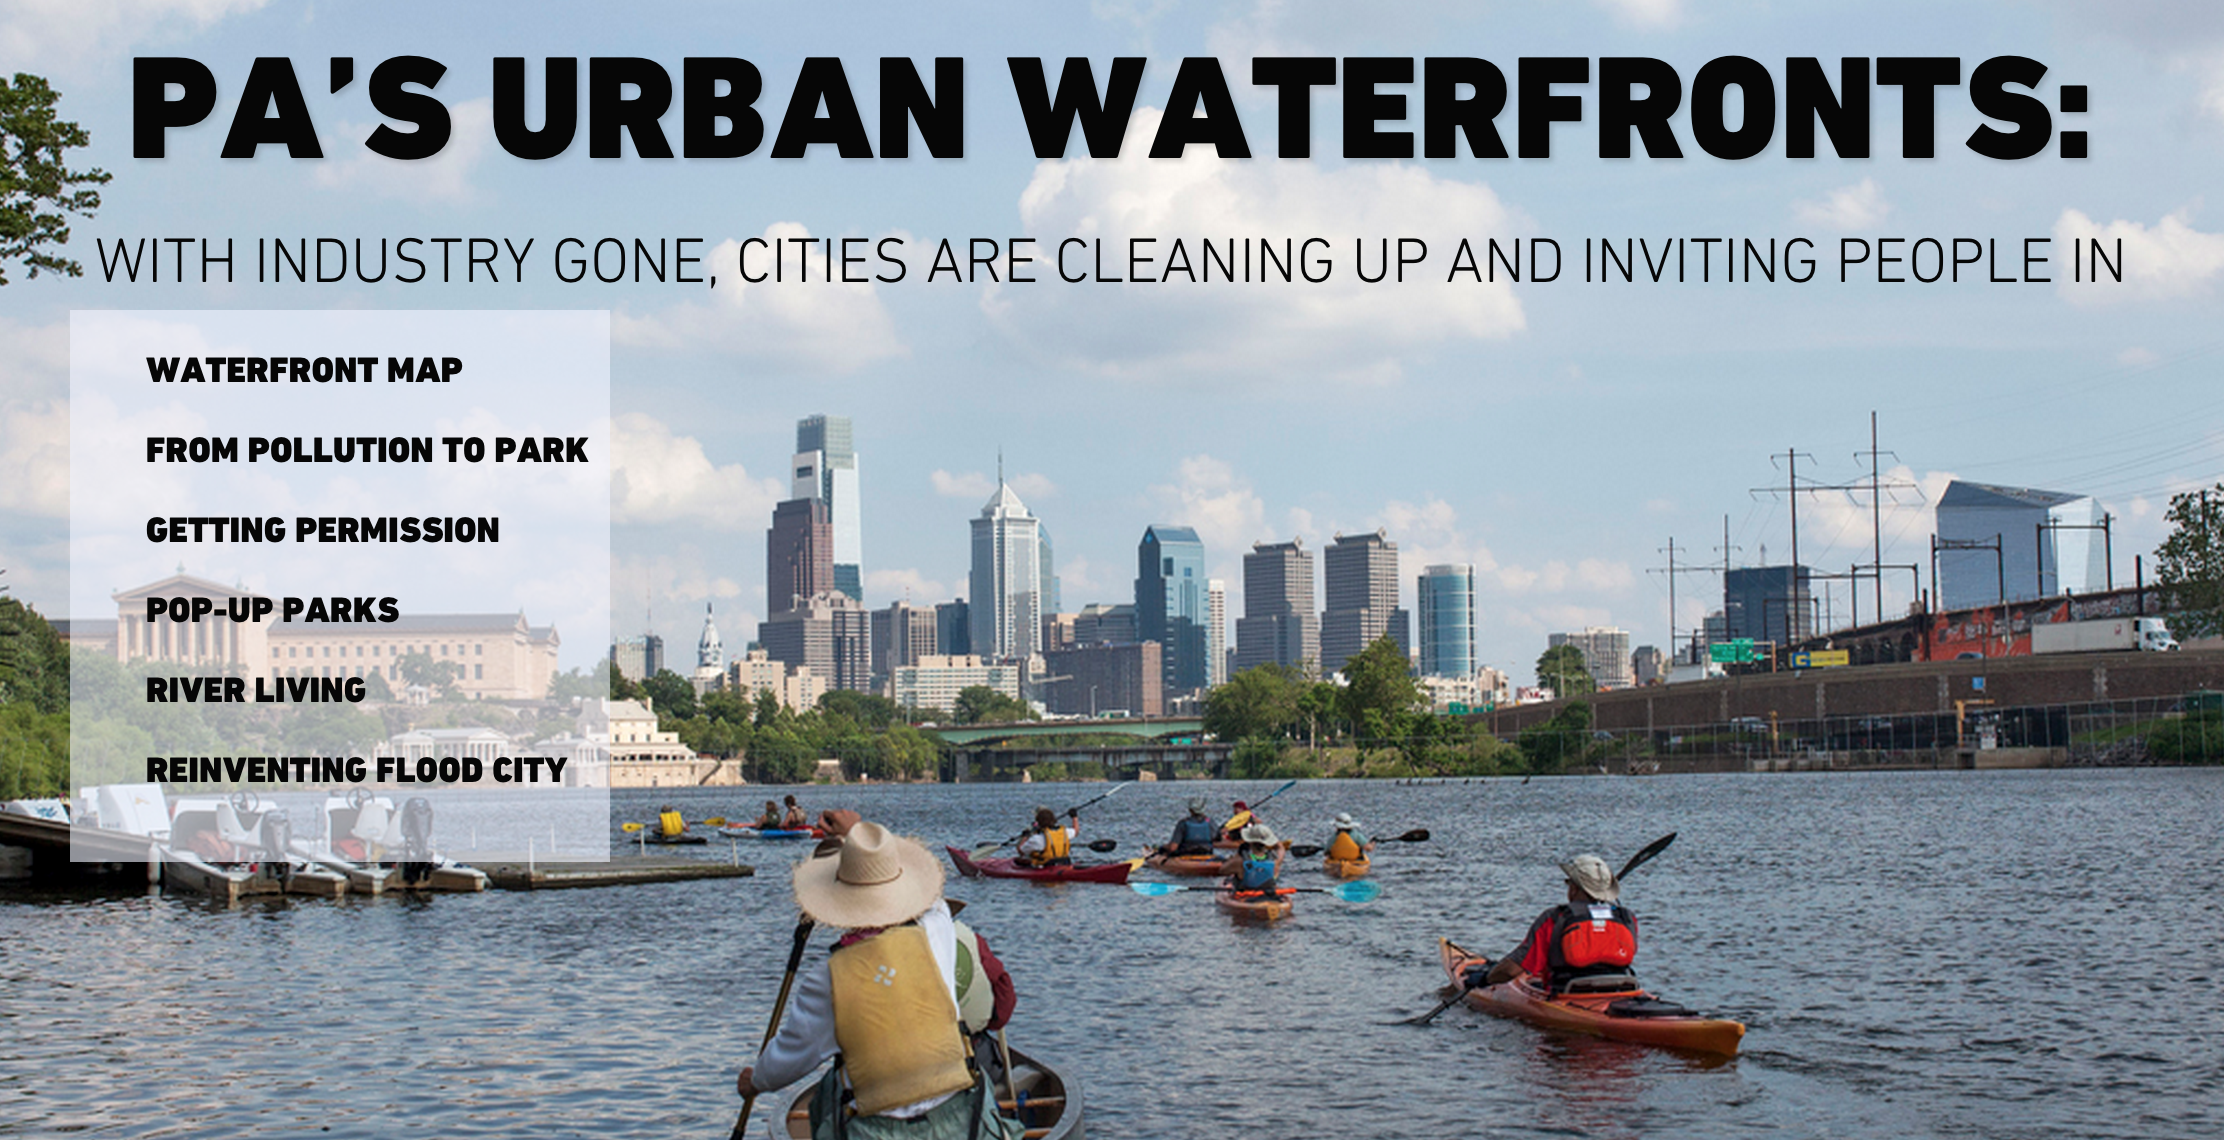 Keystone Crossroads Special Report: Pa's Urban Waterfronts